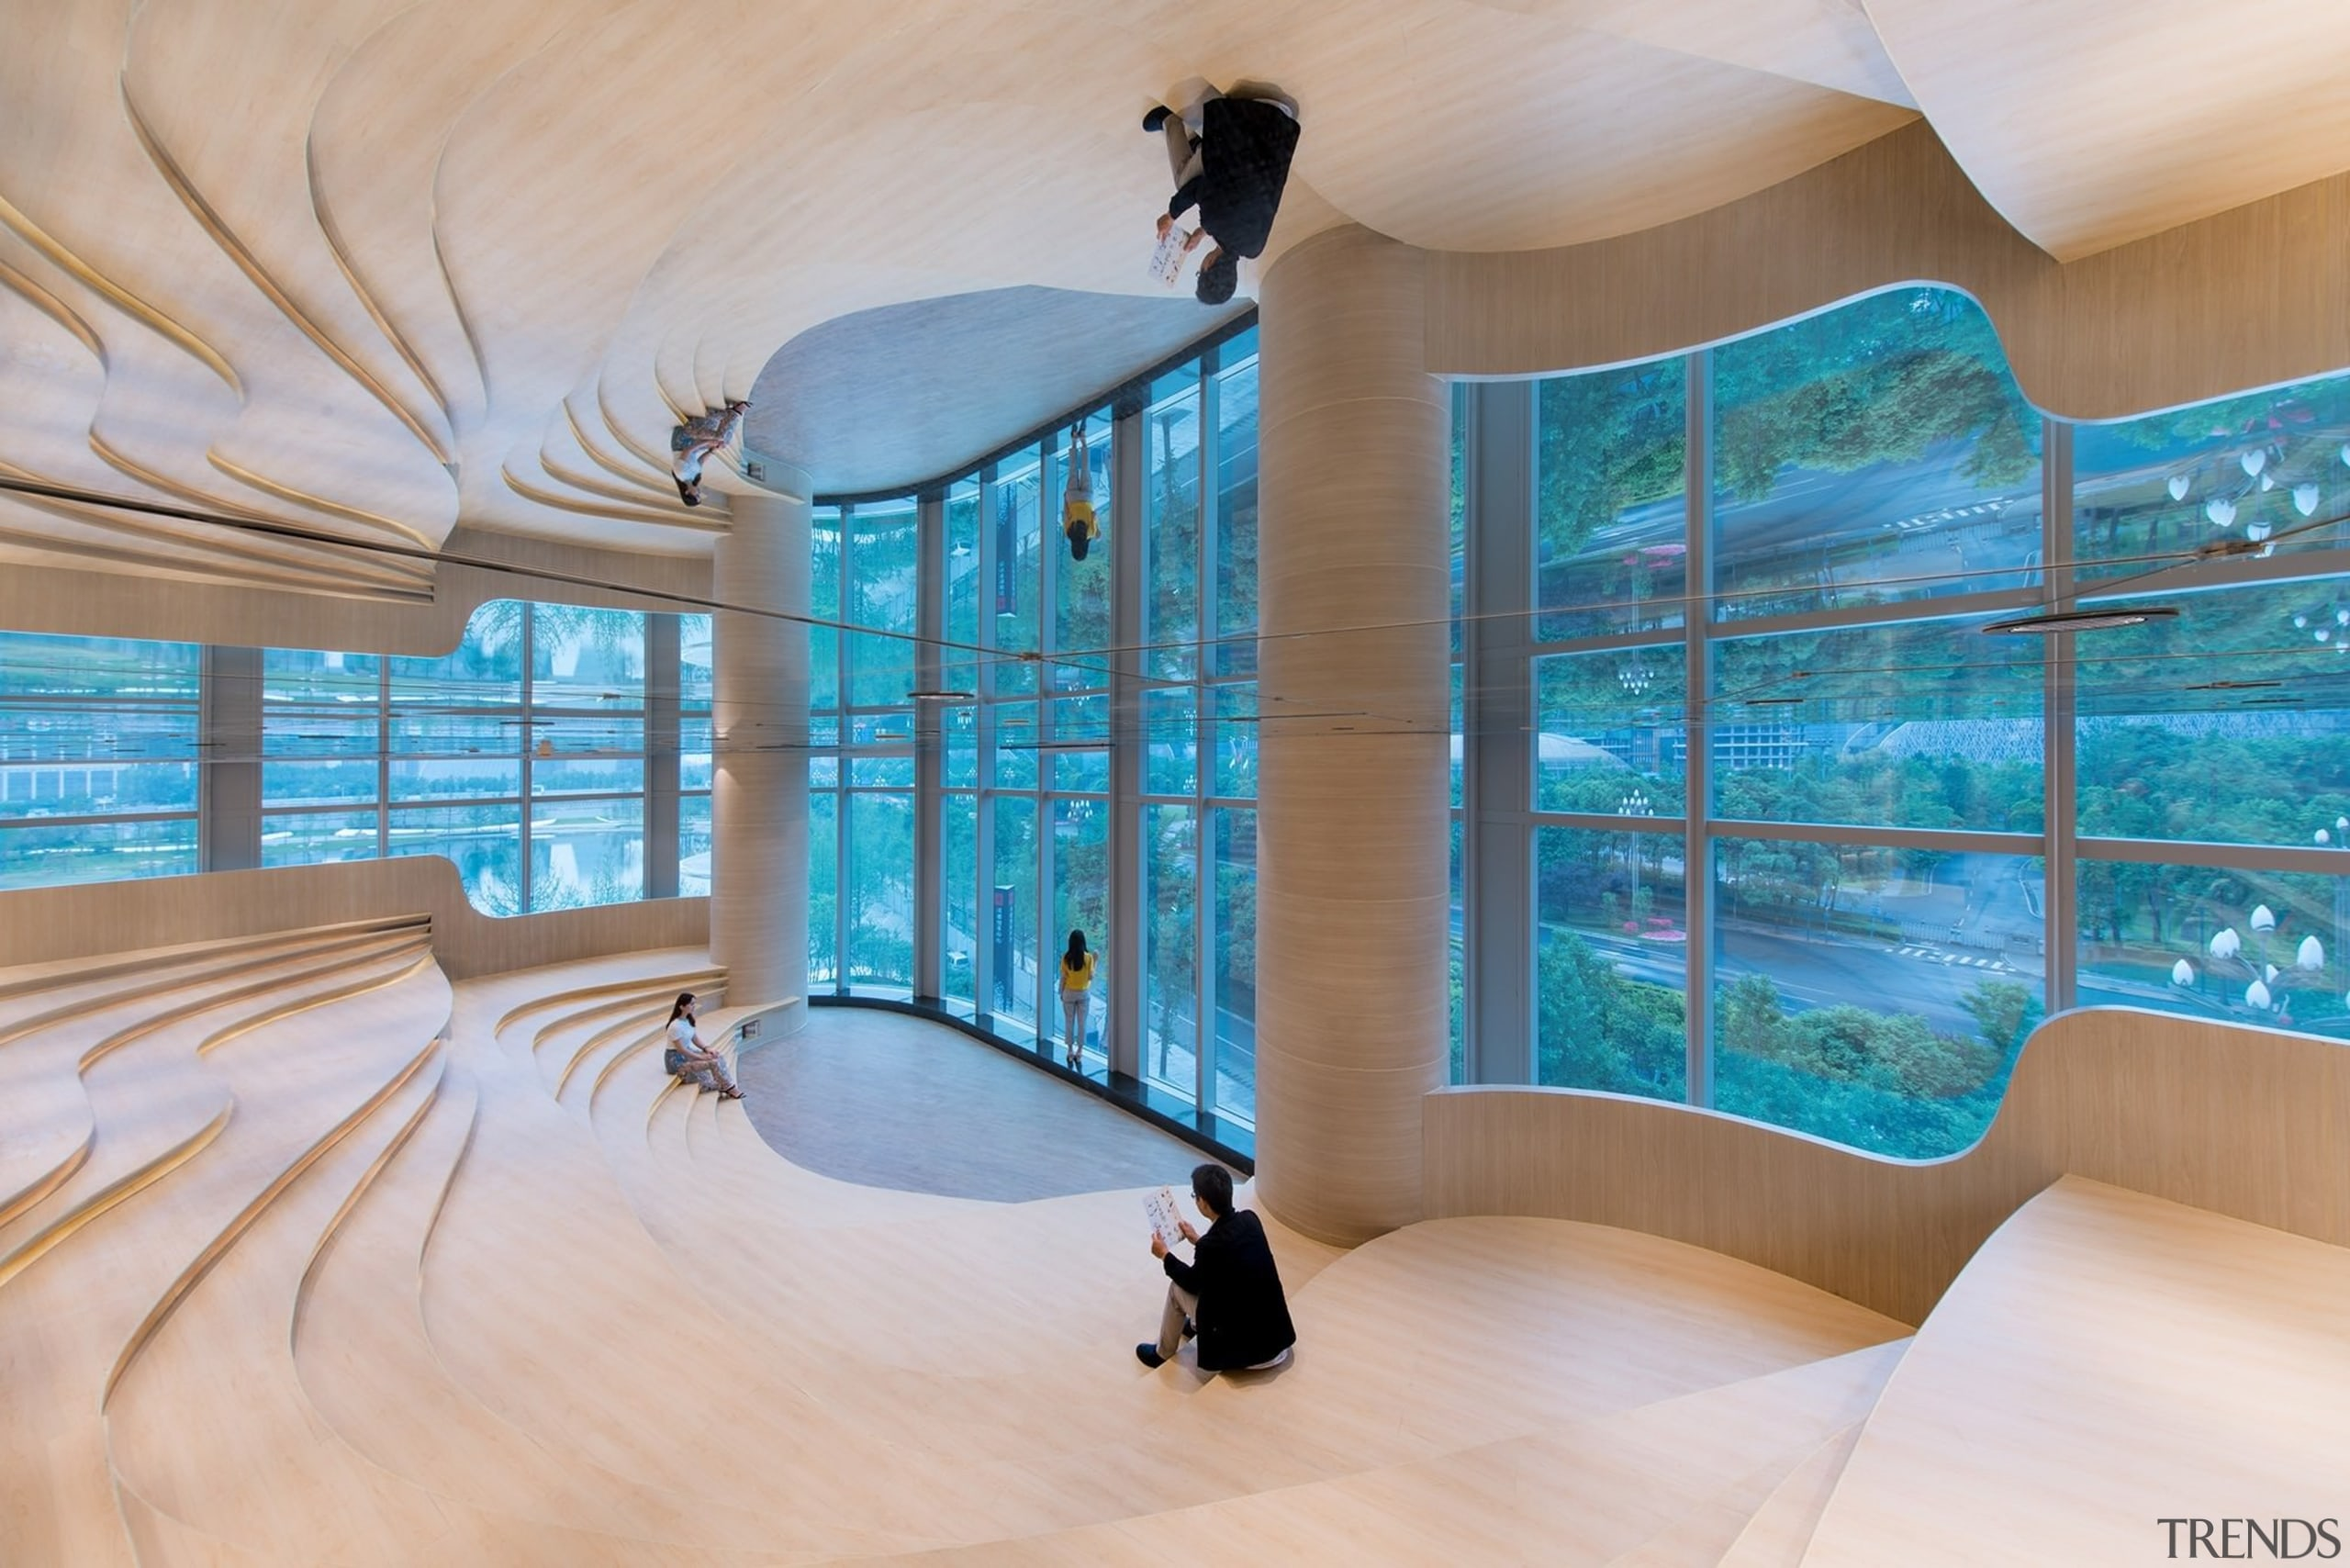 Architect: X+LivingPhotography by Shao Feng architecture, ceiling, estate, interior design, leisure, leisure centre, real estate, swimming pool, wall, gray, teal